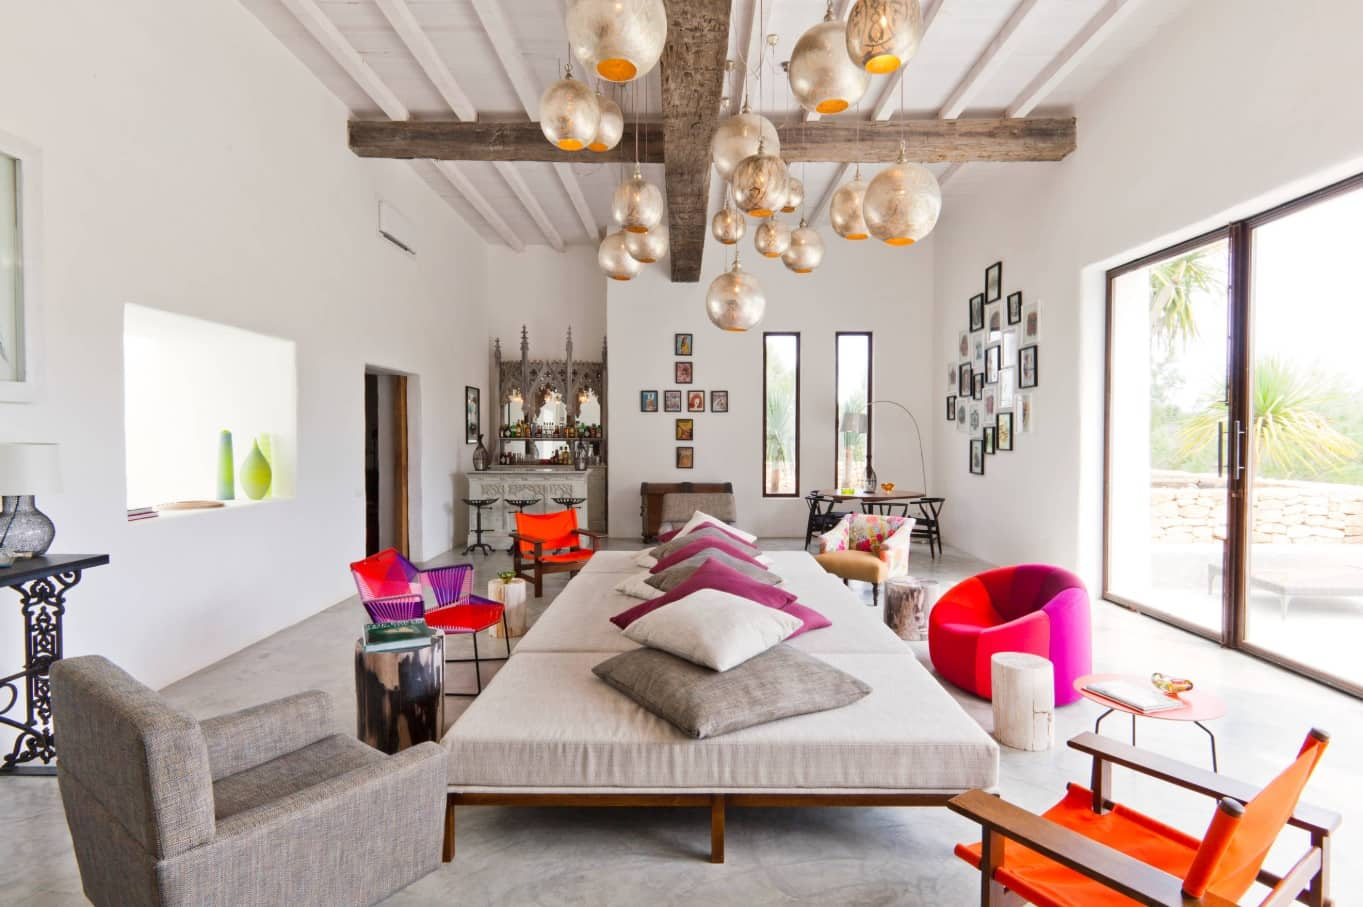 Top Tips for Making Sure Your Home Is Party-Ready. Unusual Mediterranean designed house with the open ceiling beams and decorated lighting